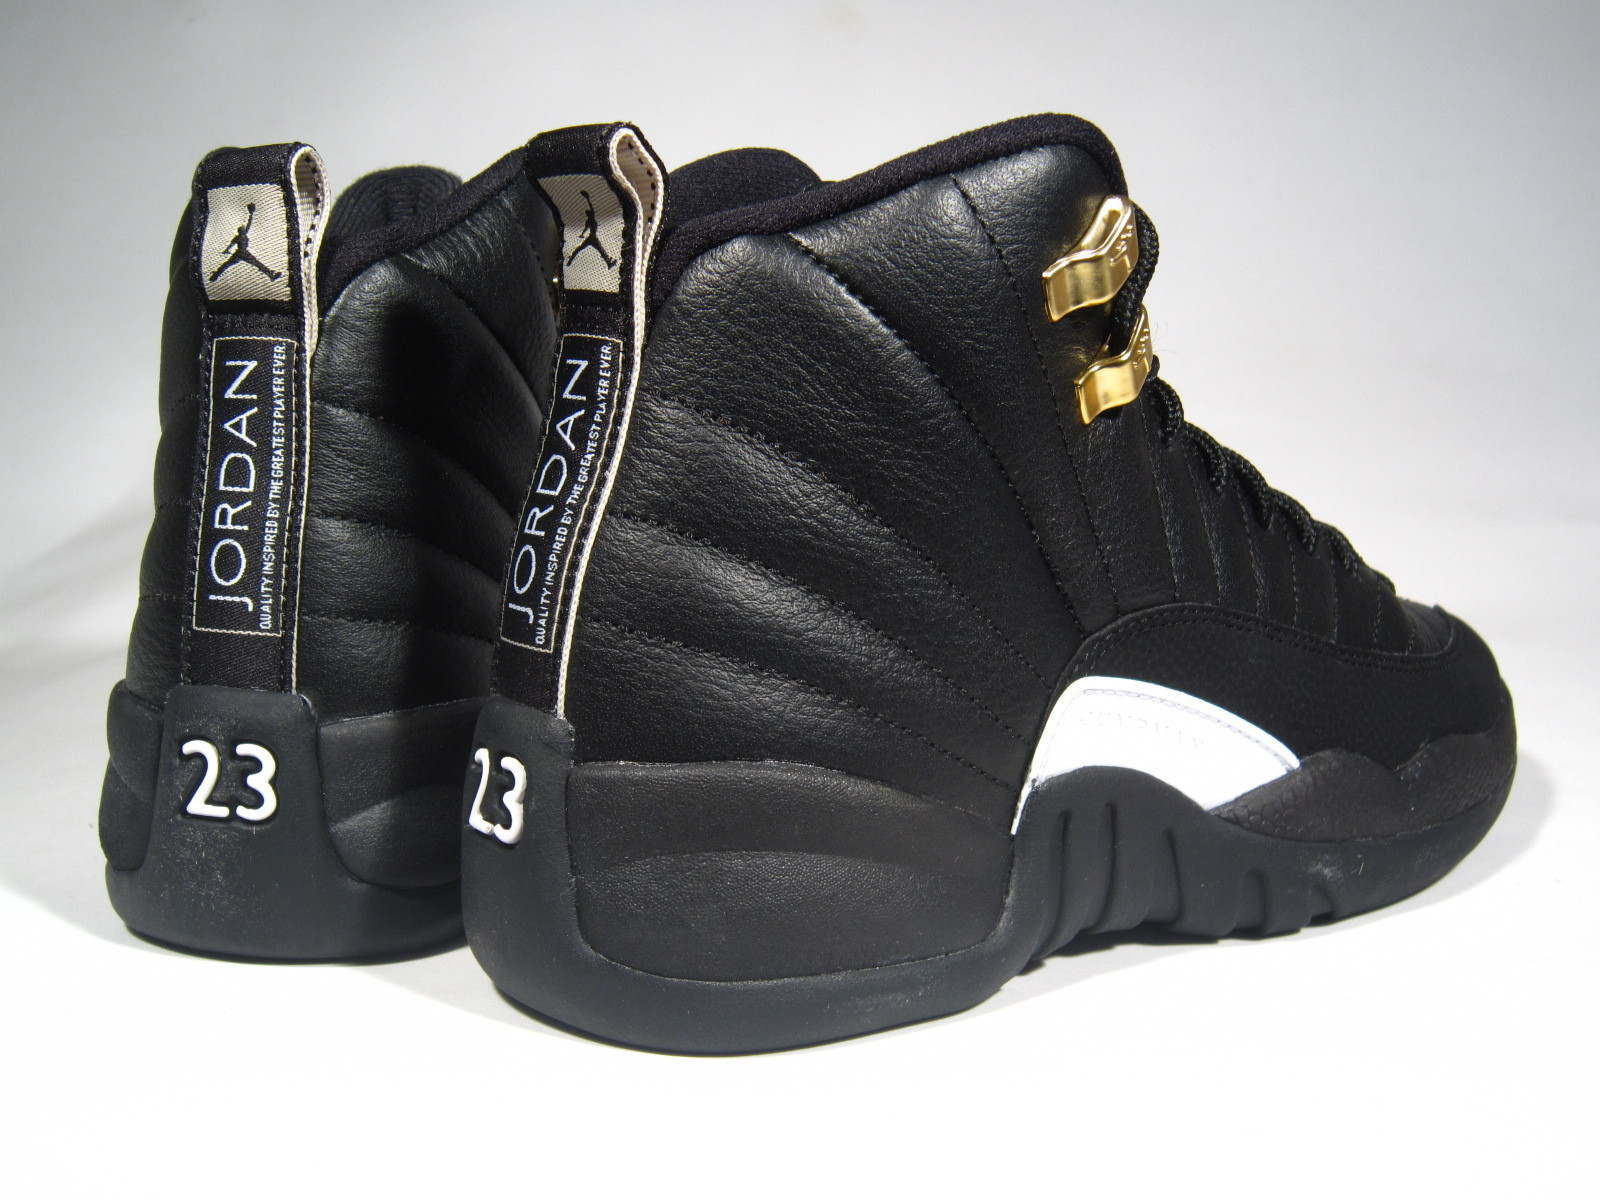 SS16 AIR JORDAN RETRO 12 GS THE MASTER 22.5-25cm 黒 送料無料